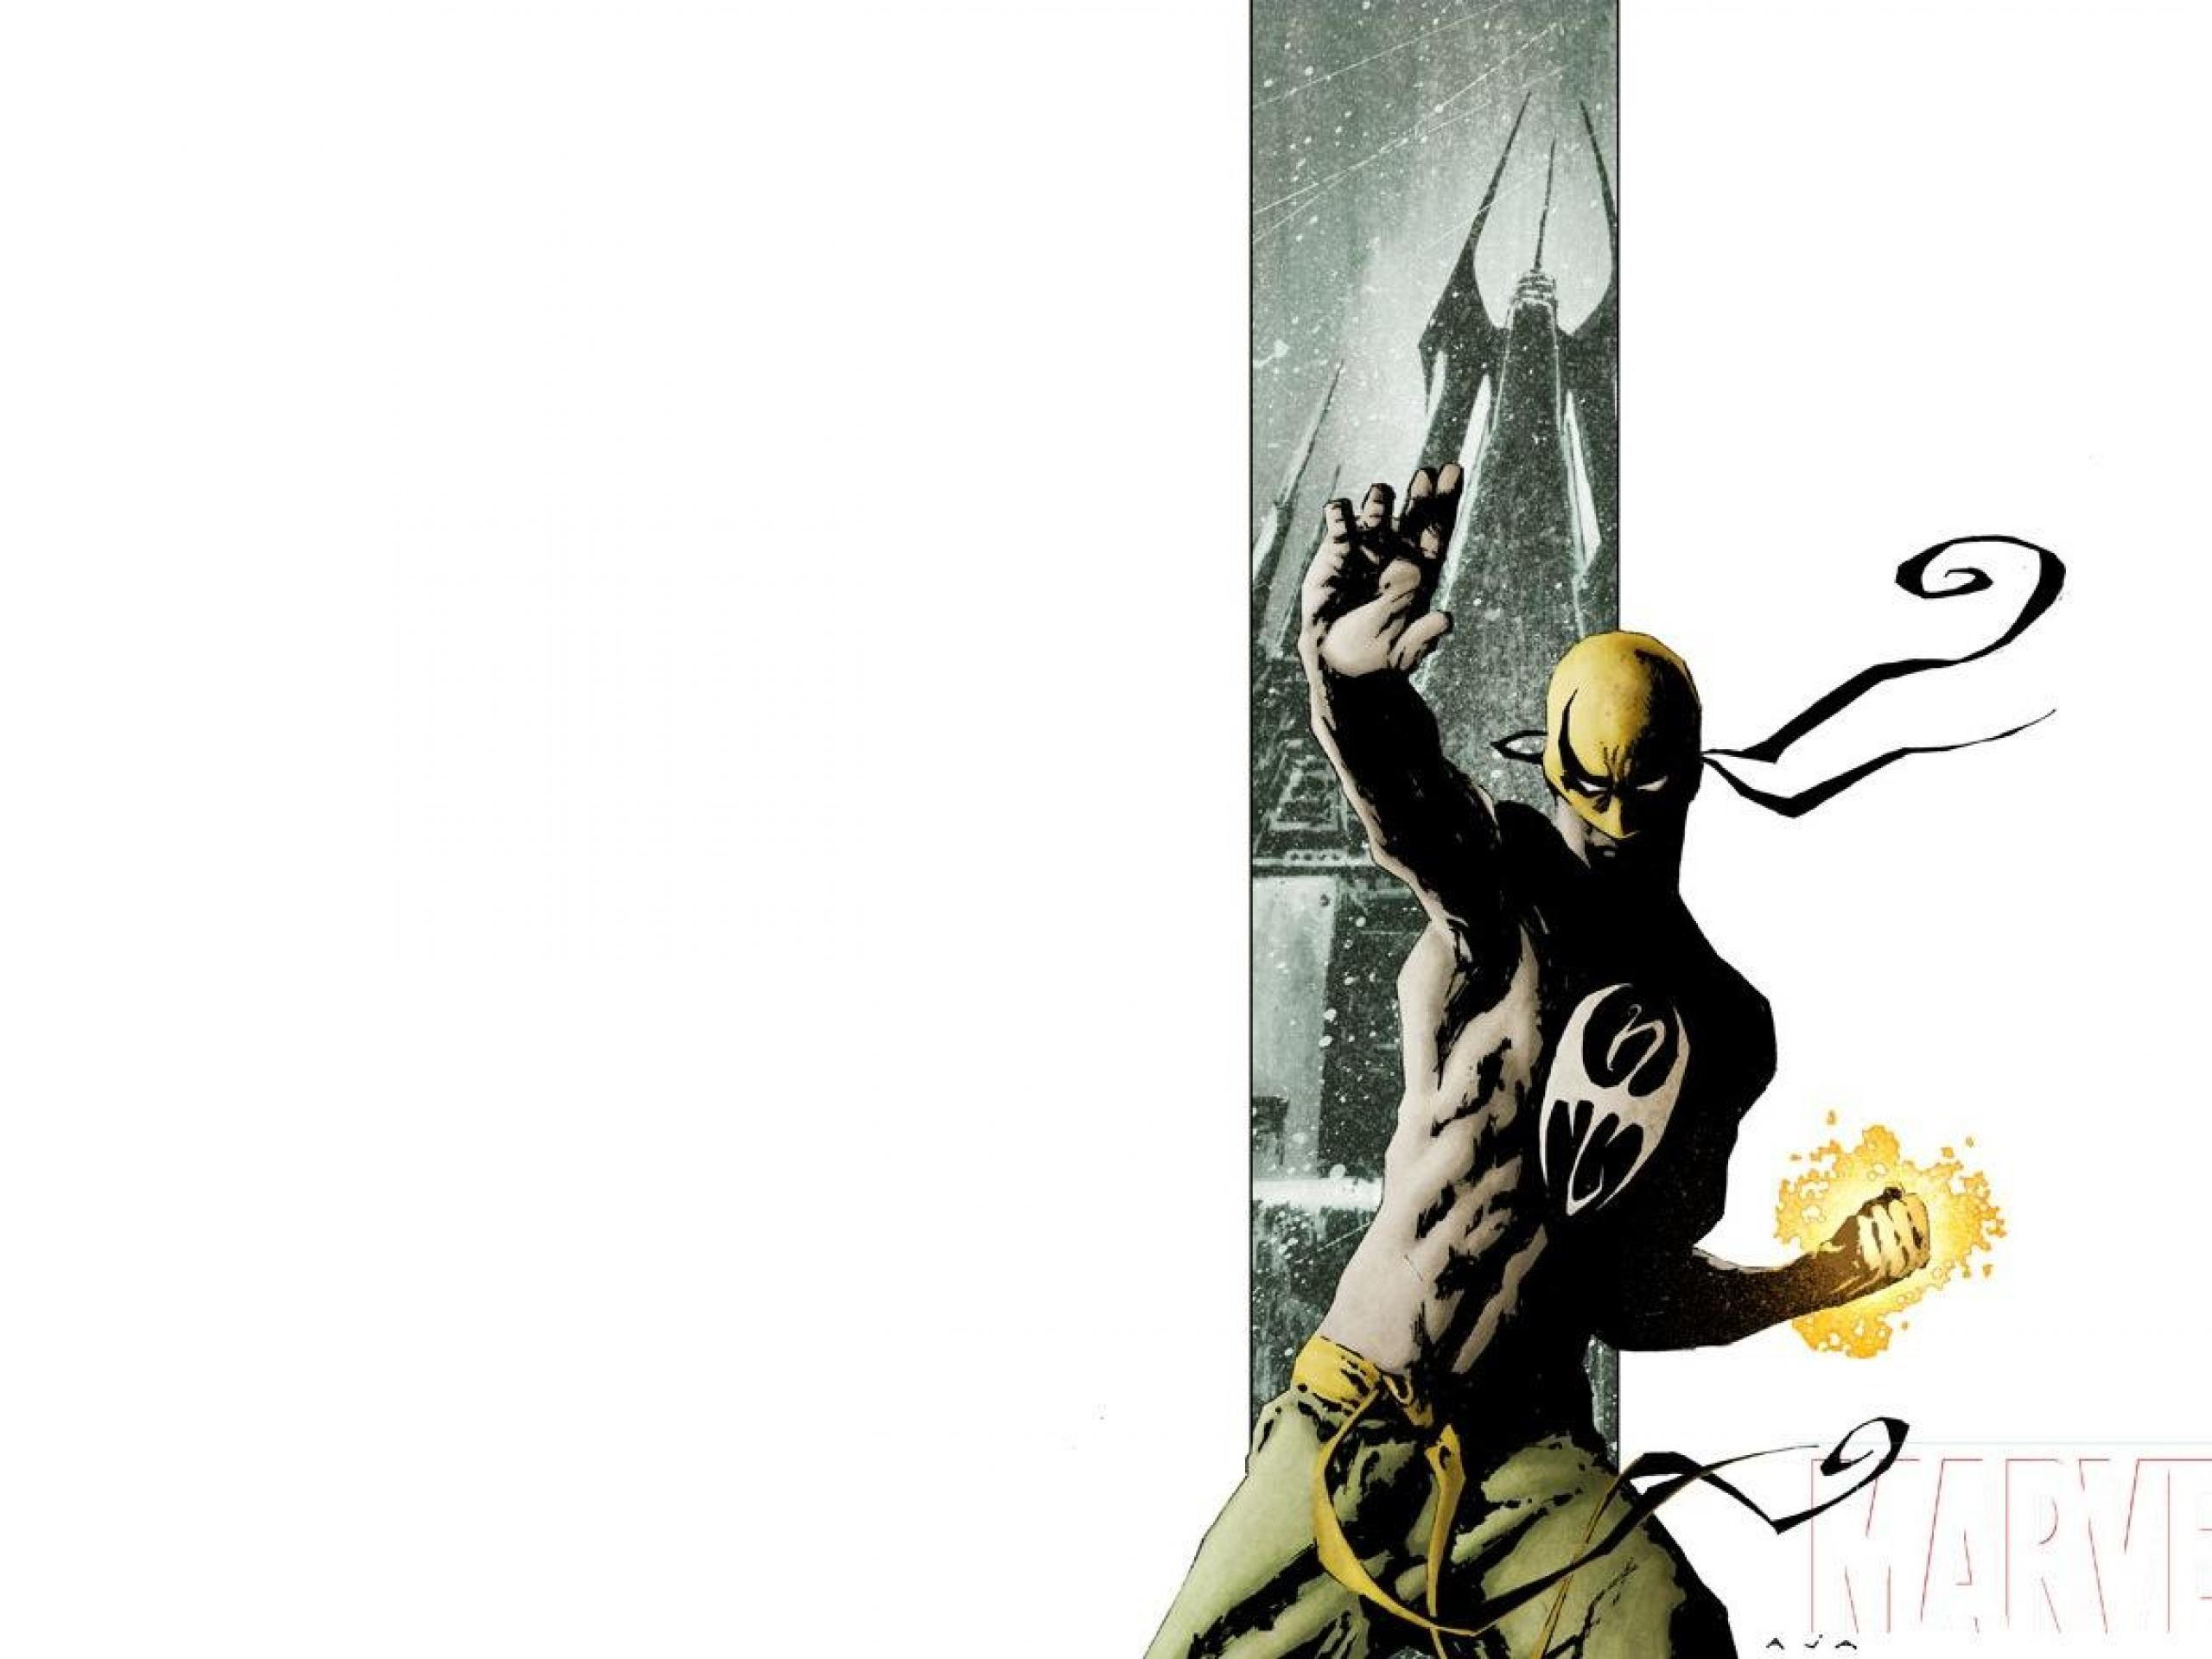 Comics Iron fist HD Wallpapers, Desktop Backgrounds, Mobile ...